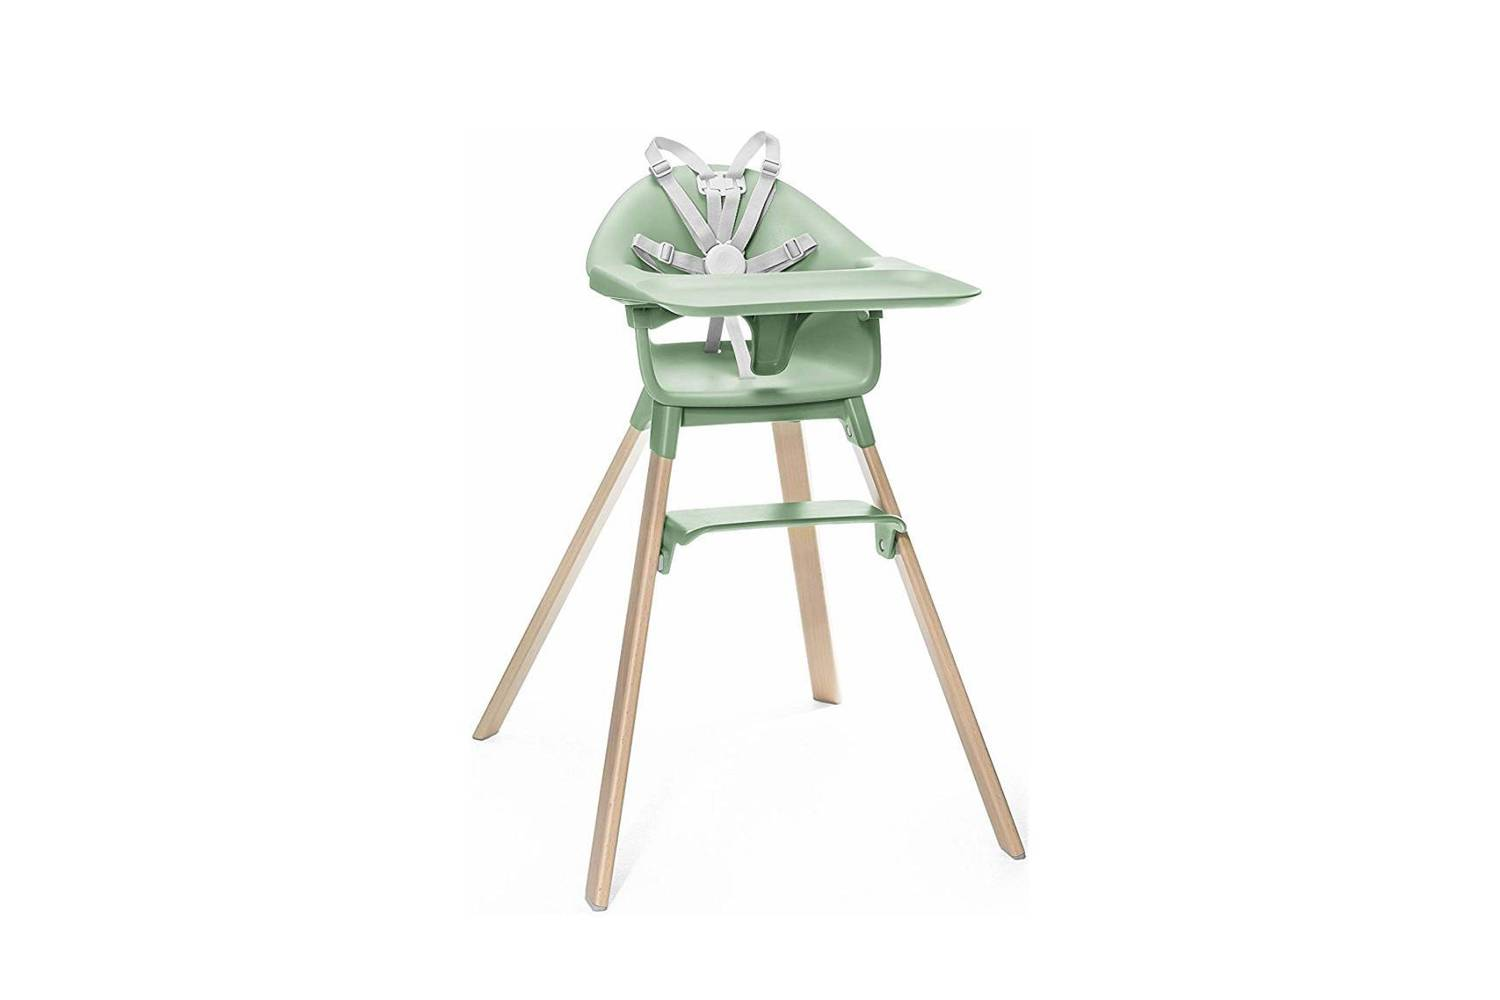 Another style from Stokke, the Clikk High Chair, shown in Clover Green, is $9 at Maisonette.